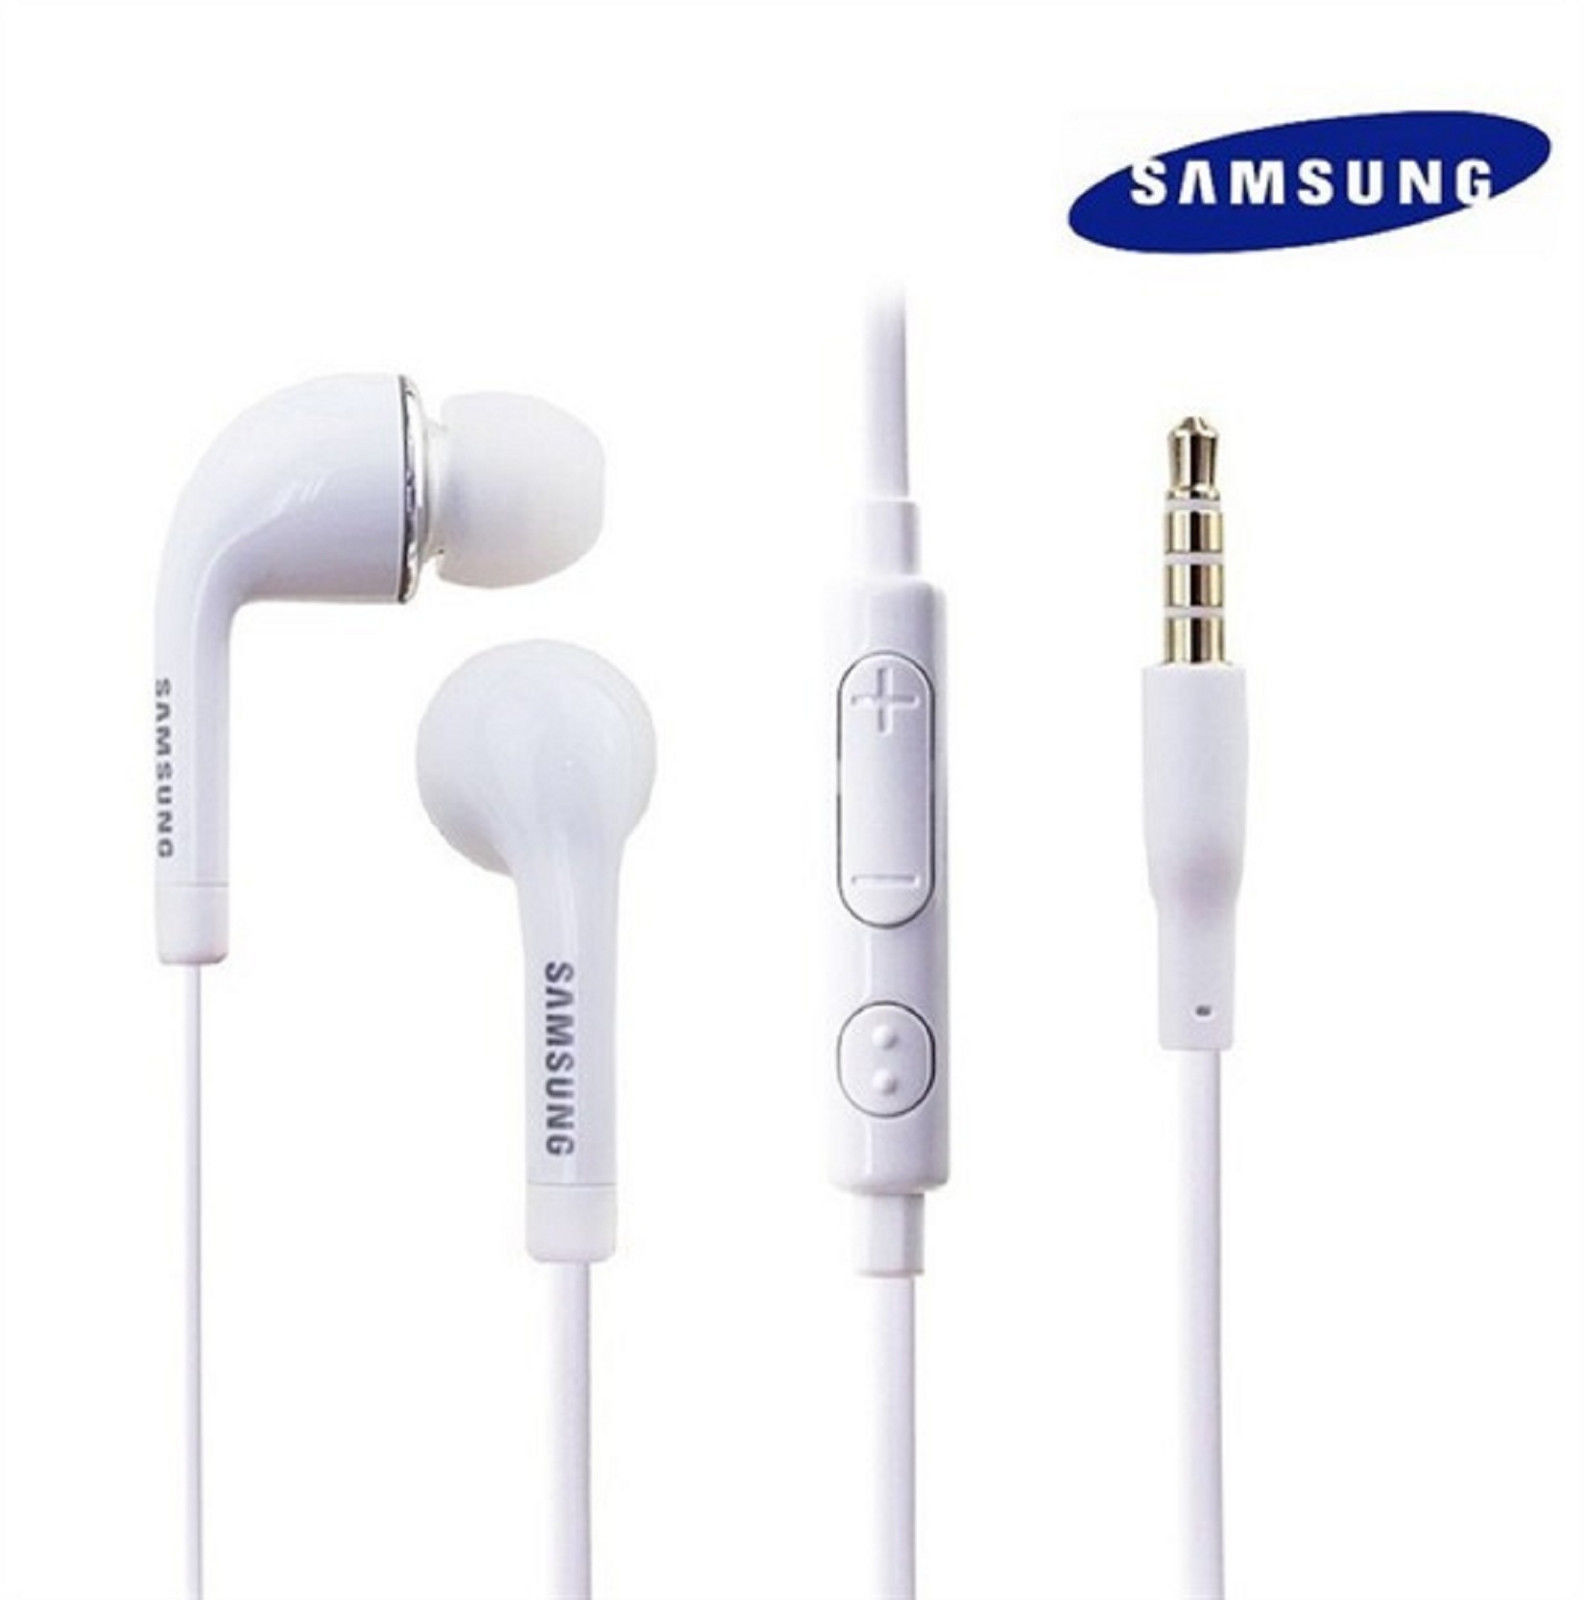 674 Oem Samsung Galaxy S4 S5 Note 3 4 5 Stereo Earphone Headset Bluetooth Sport Hifi Sound Bt 1 For Androit Ampamp Apple Red Volume On Off Button Ebay Electronics